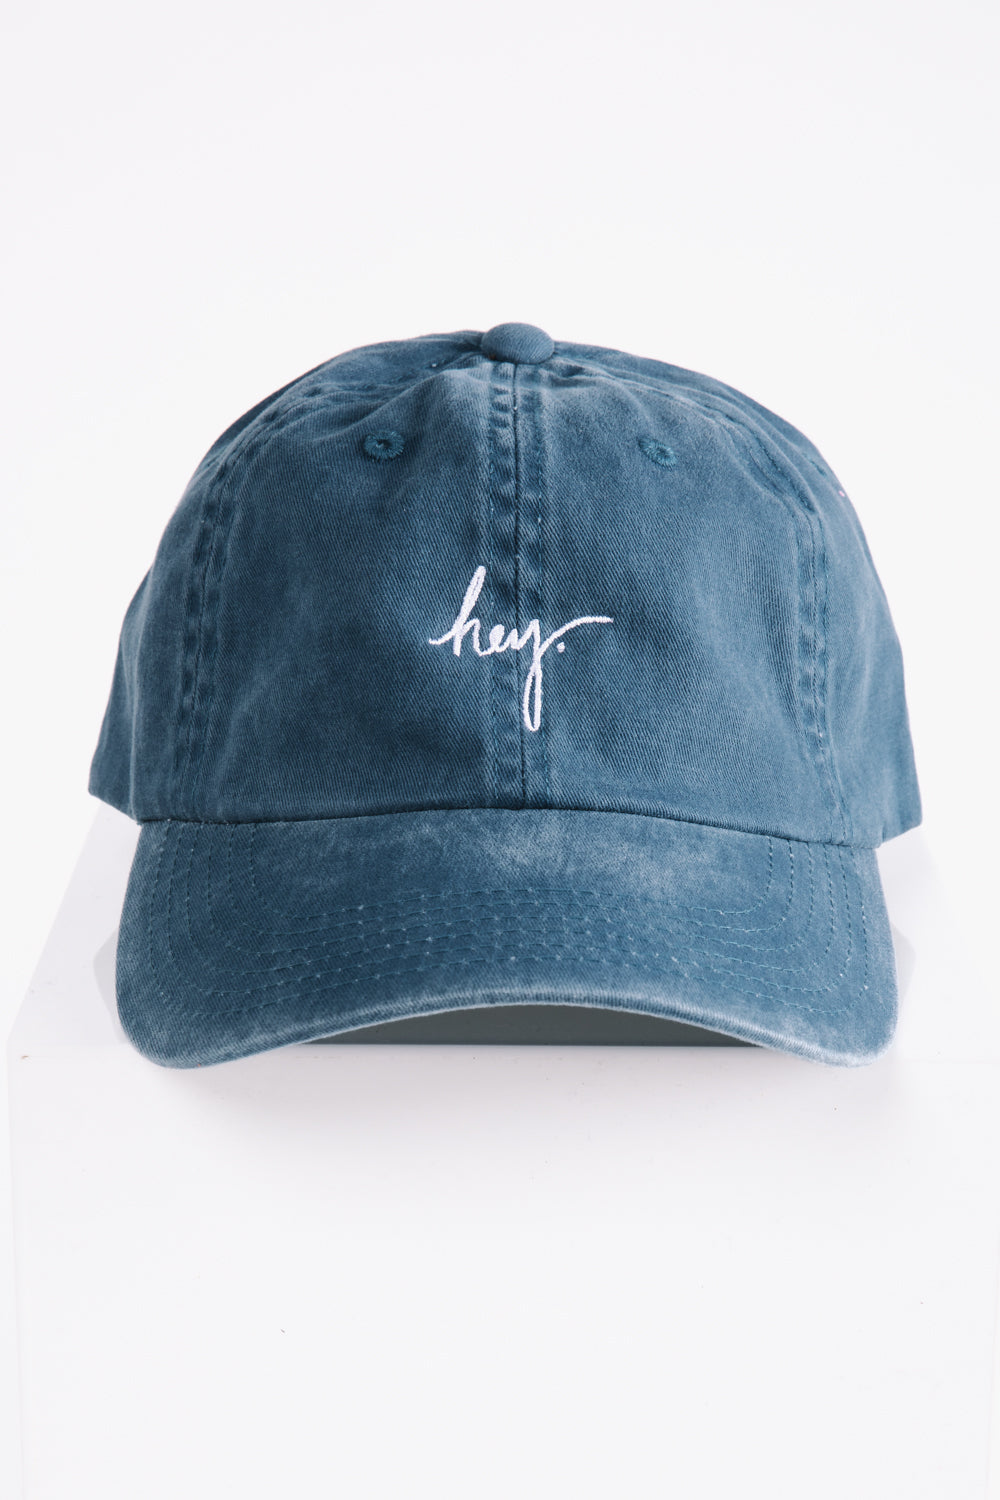 Piper & Scoot: The hey. Cap in Steel Blue